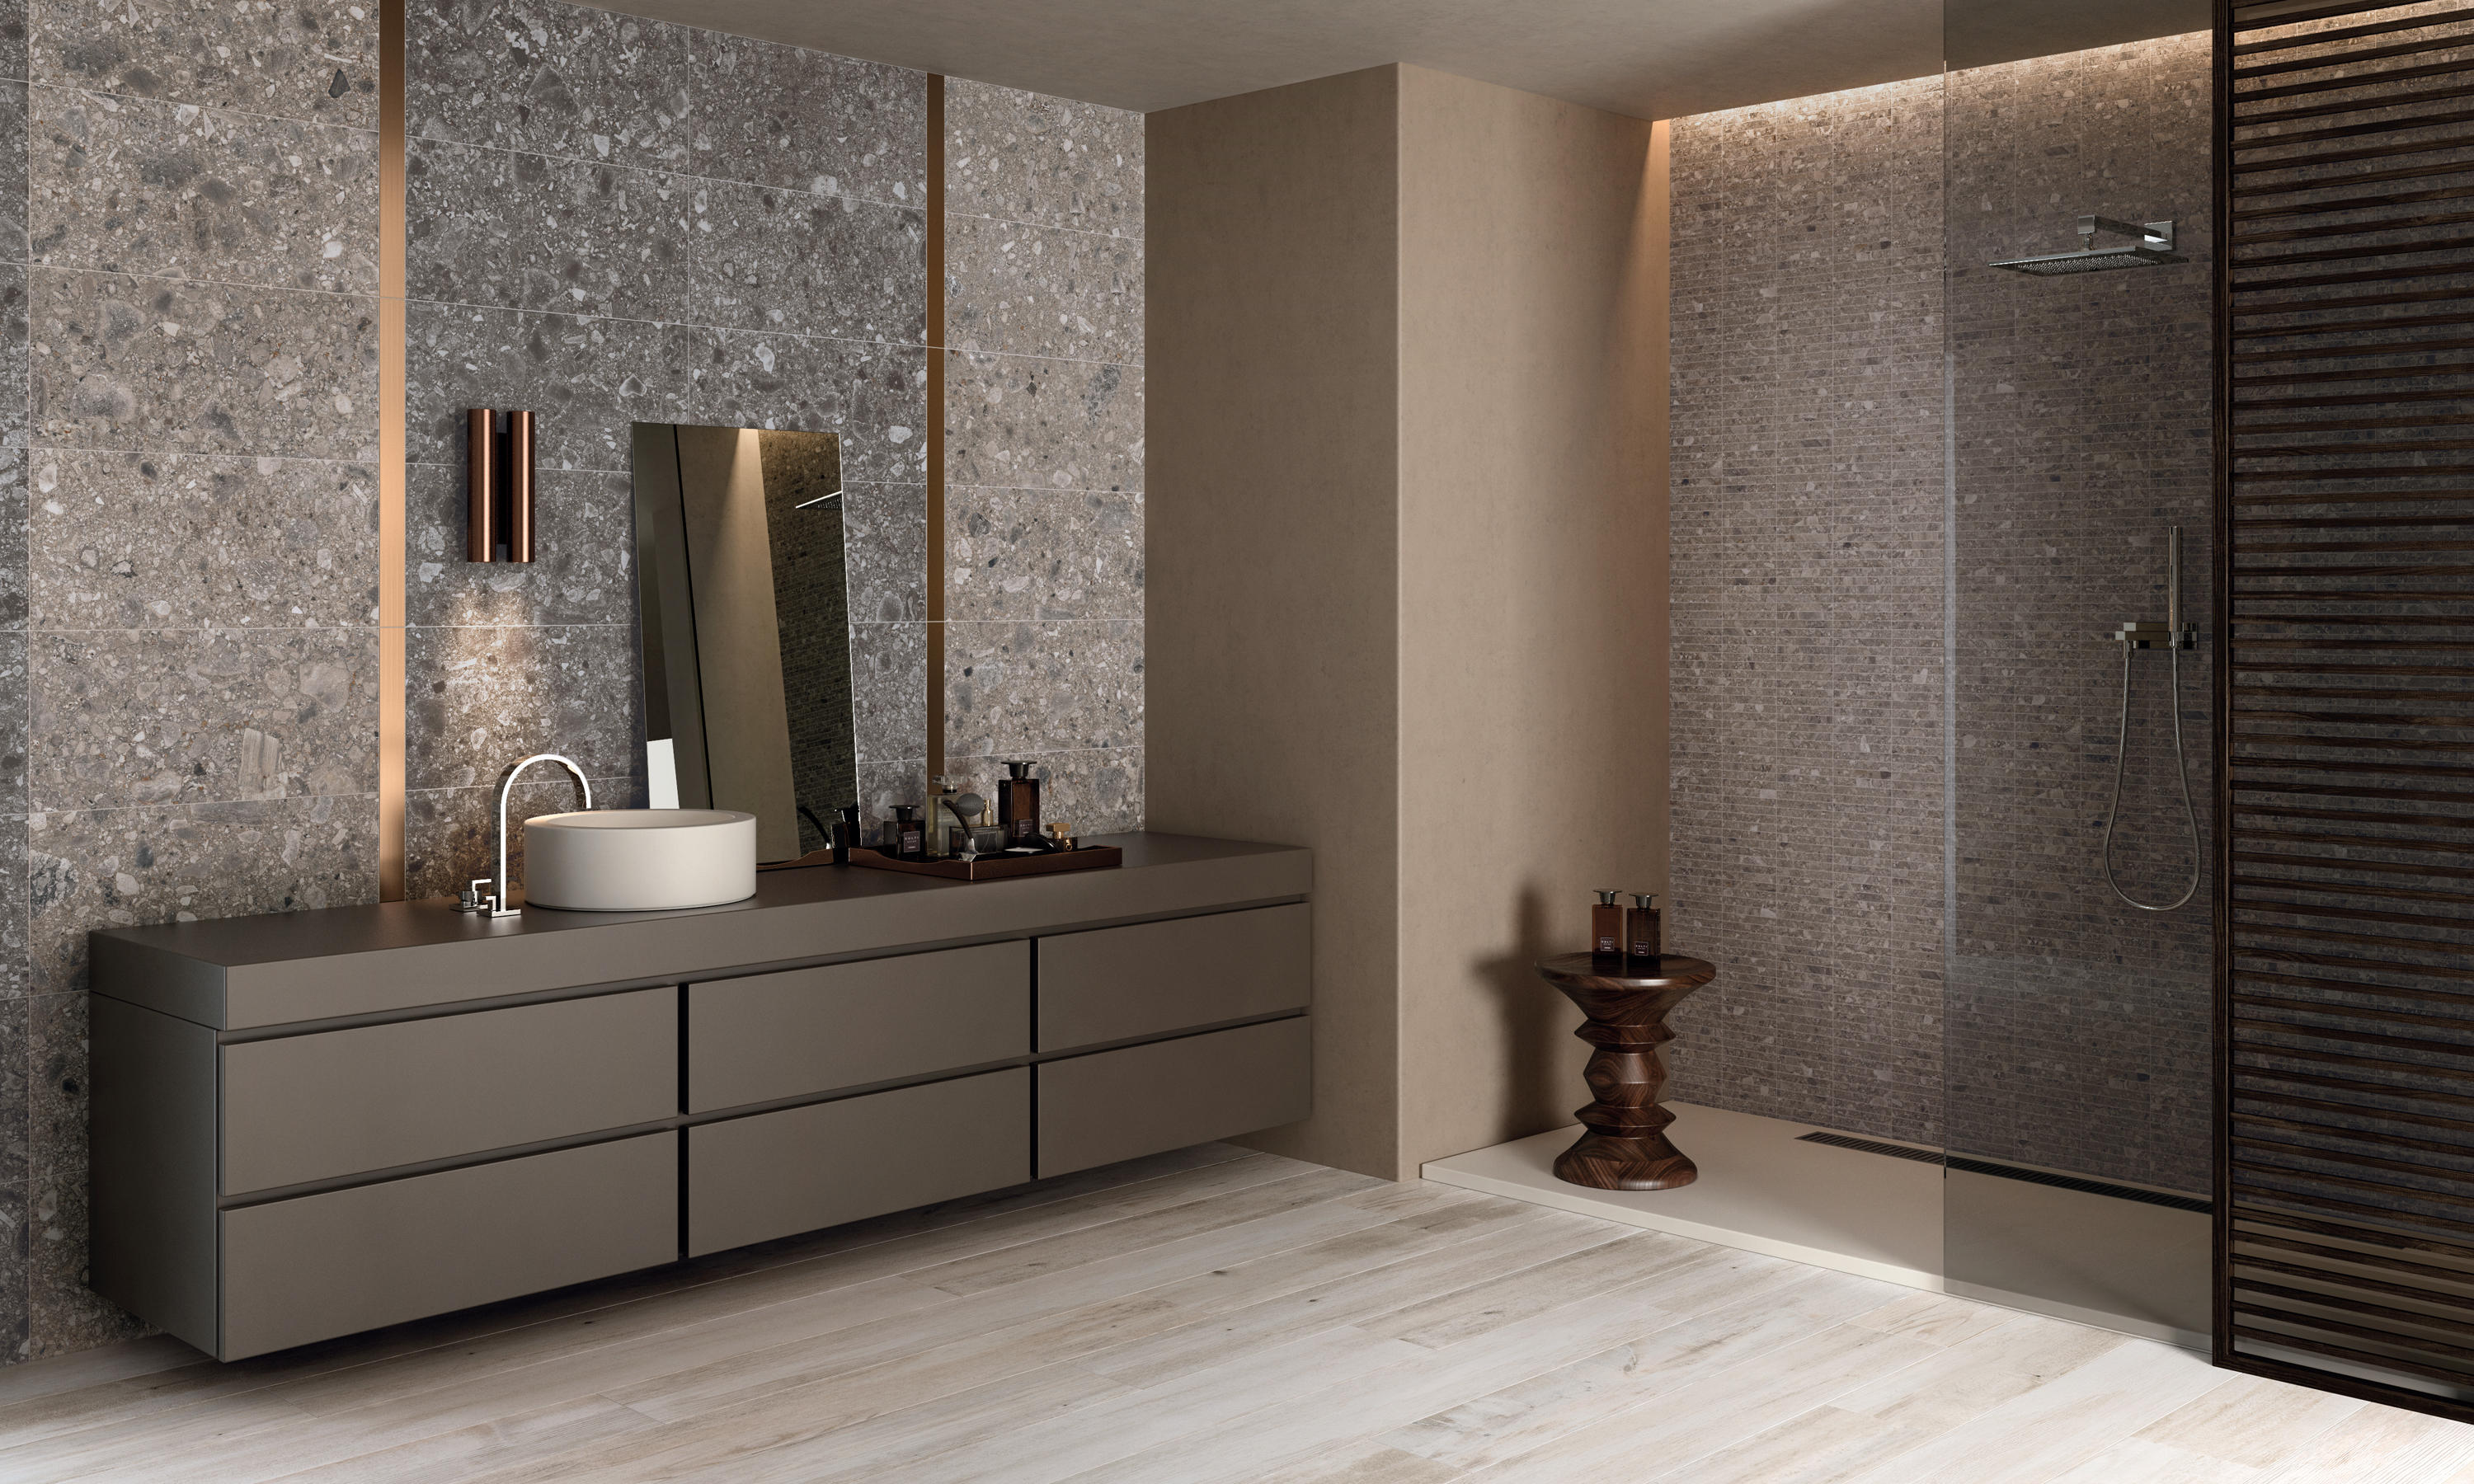 Futura Antracite Ceramic Tiles From Ariana Ceramica